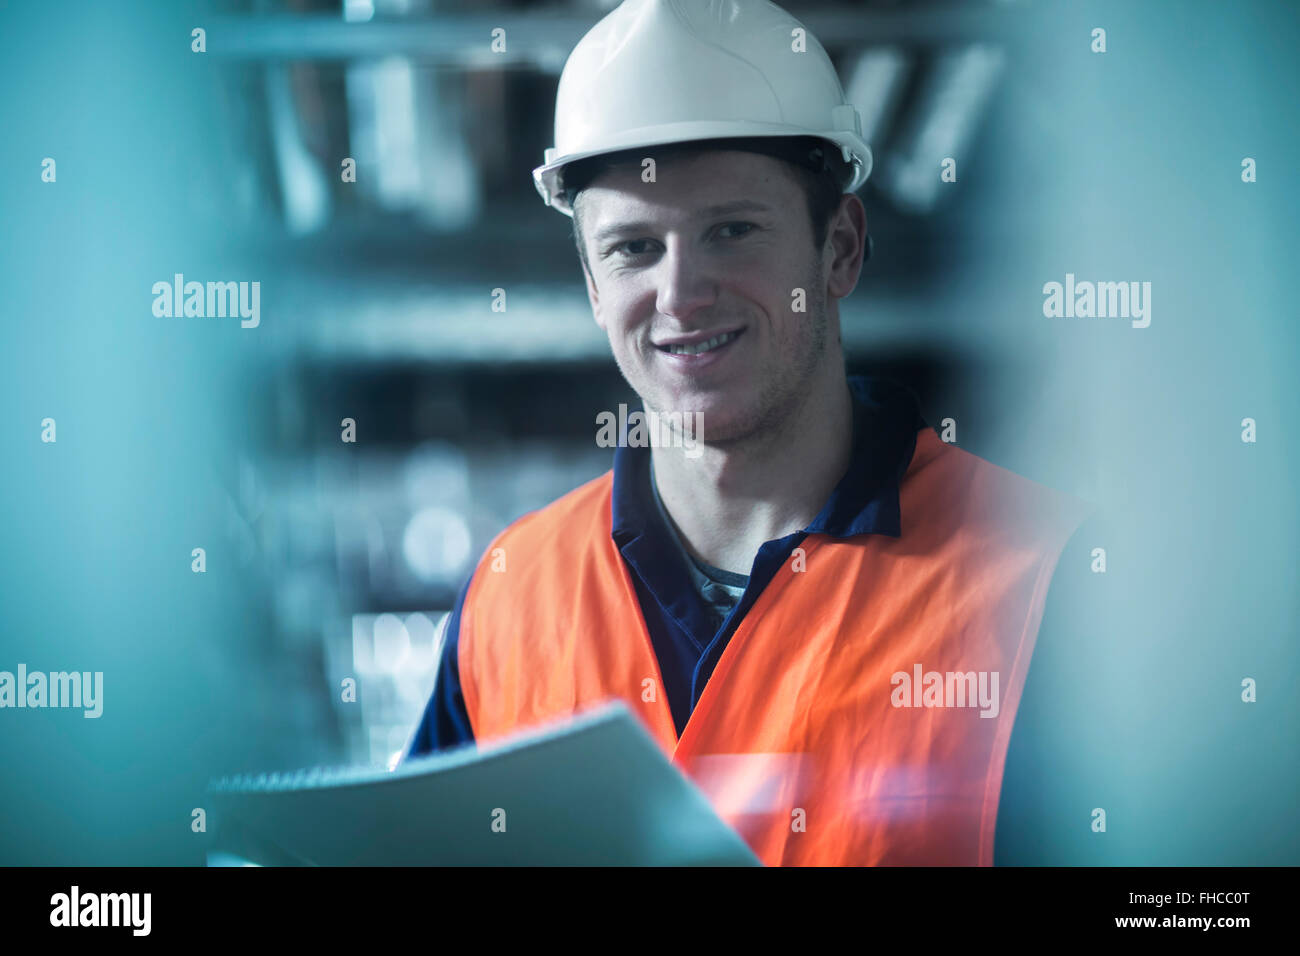 Portrait of smiling young man with safety clothes in technical room - Stock Image